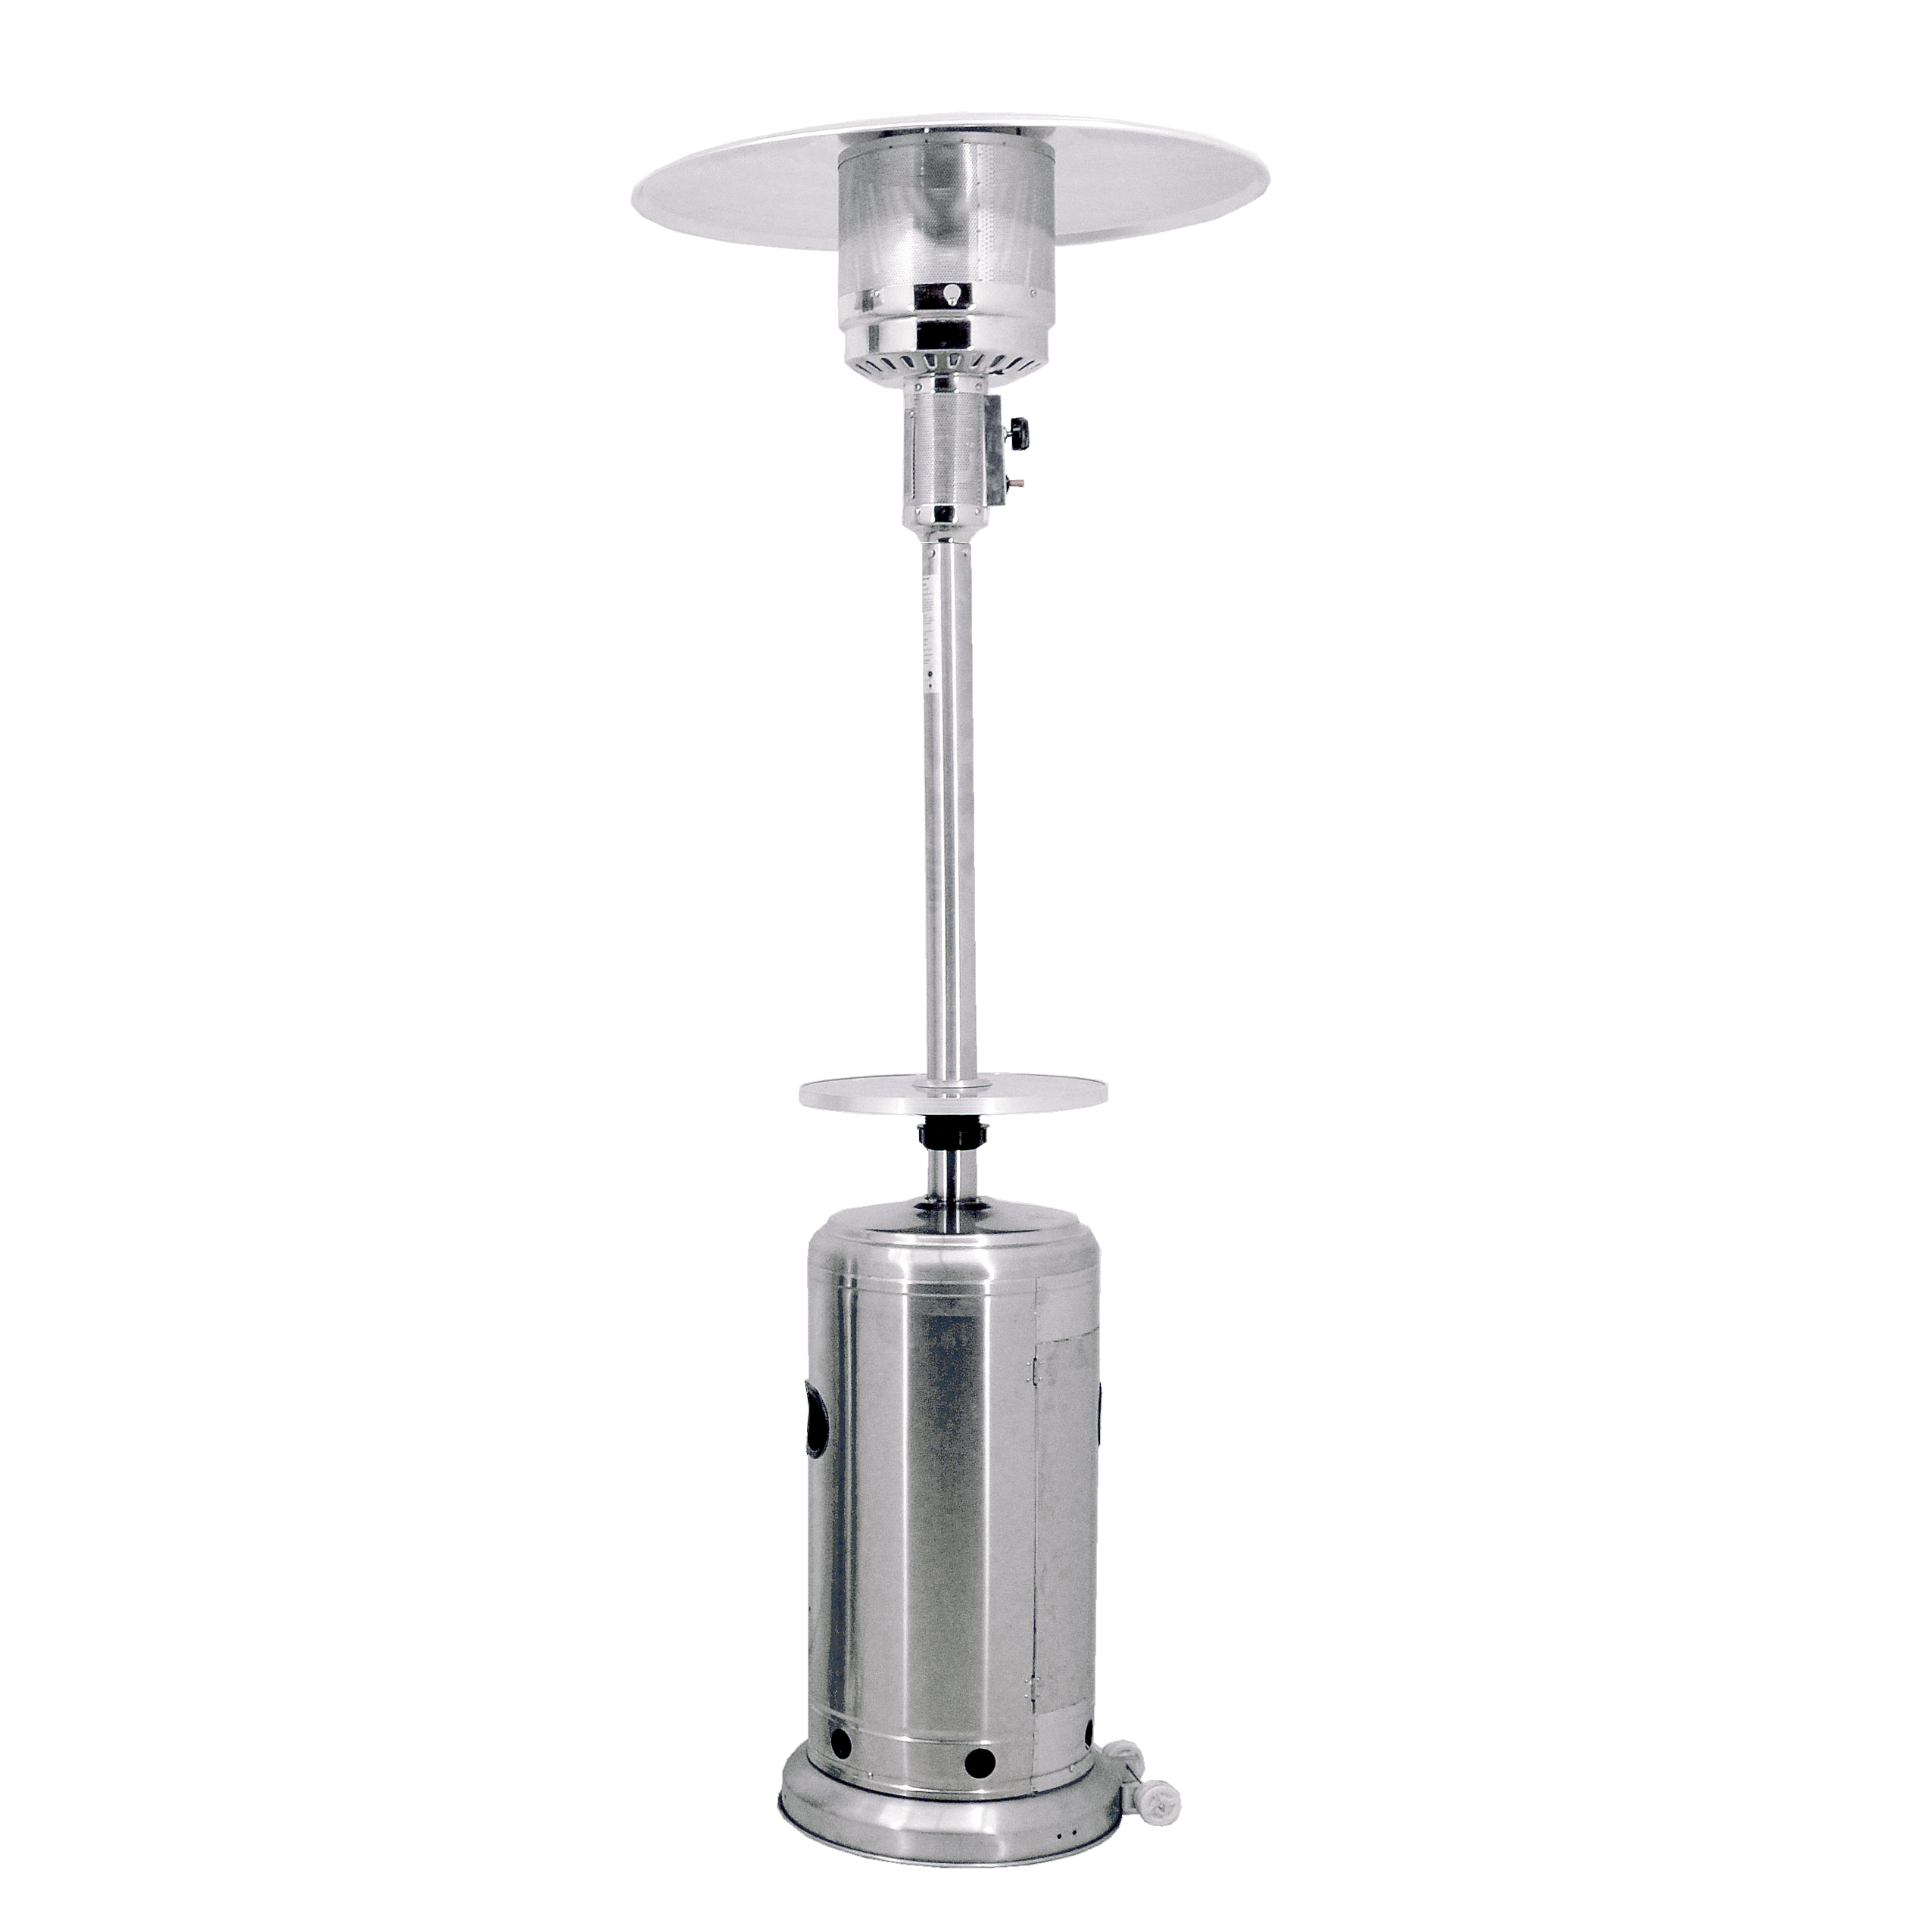 Omcan USA (PH-CN-0014) Patio Heater - 43595